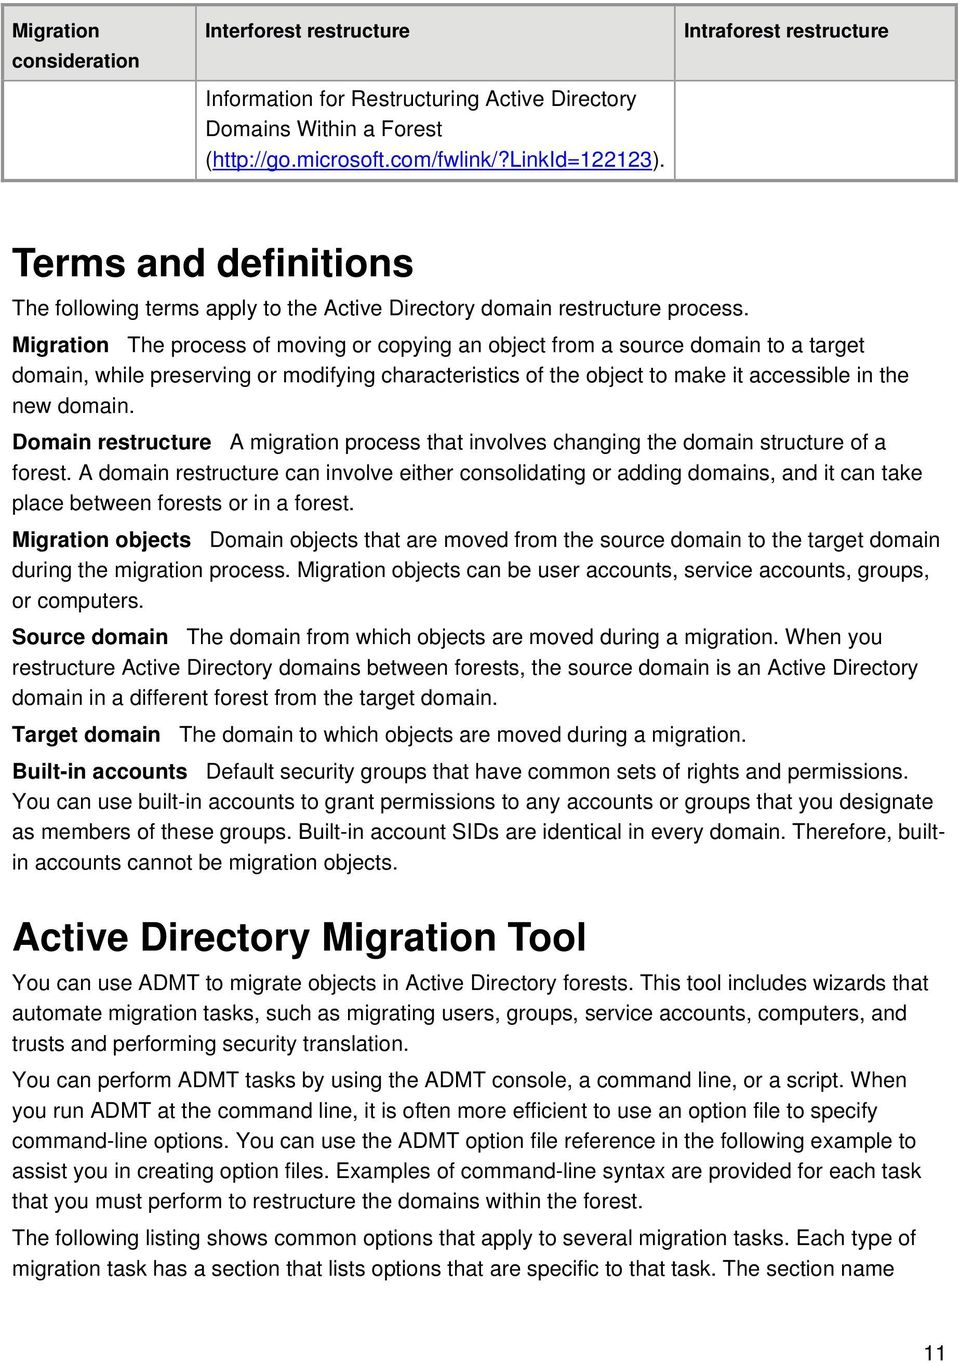 Migration The process of moving or copying an object from a source domain to a target domain, while preserving or modifying characteristics of the object to make it accessible in the new domain.